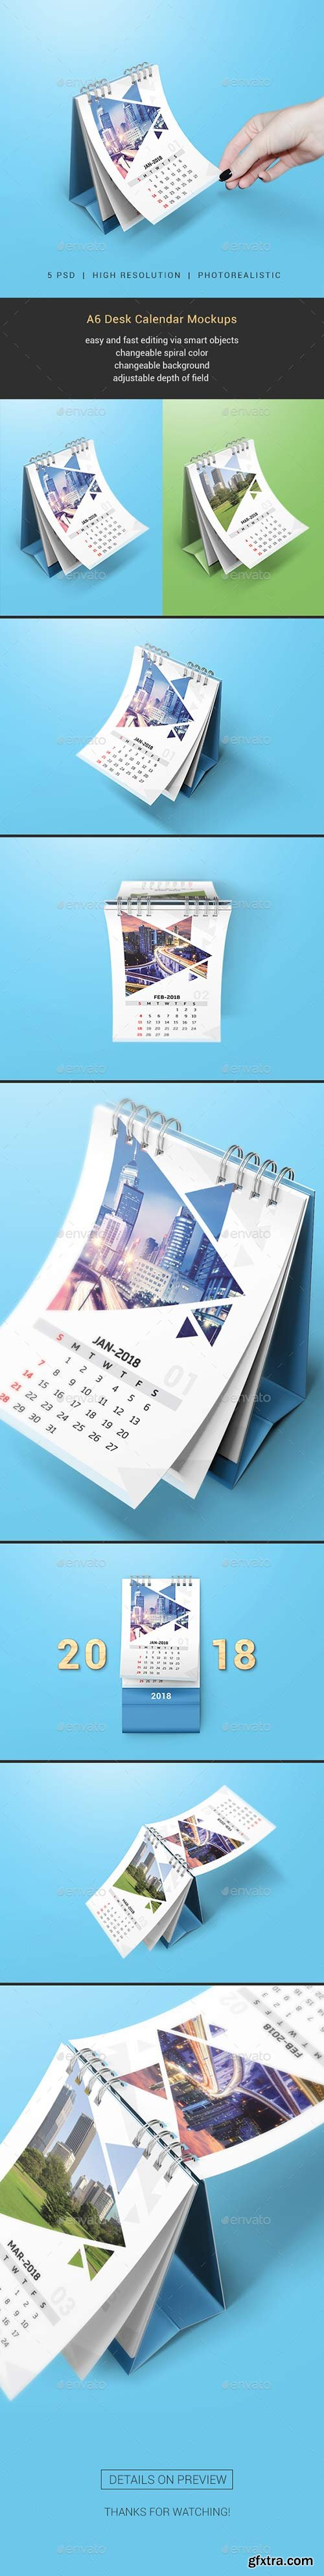 Graphicriver - Desk Calendar Mockups 20516927